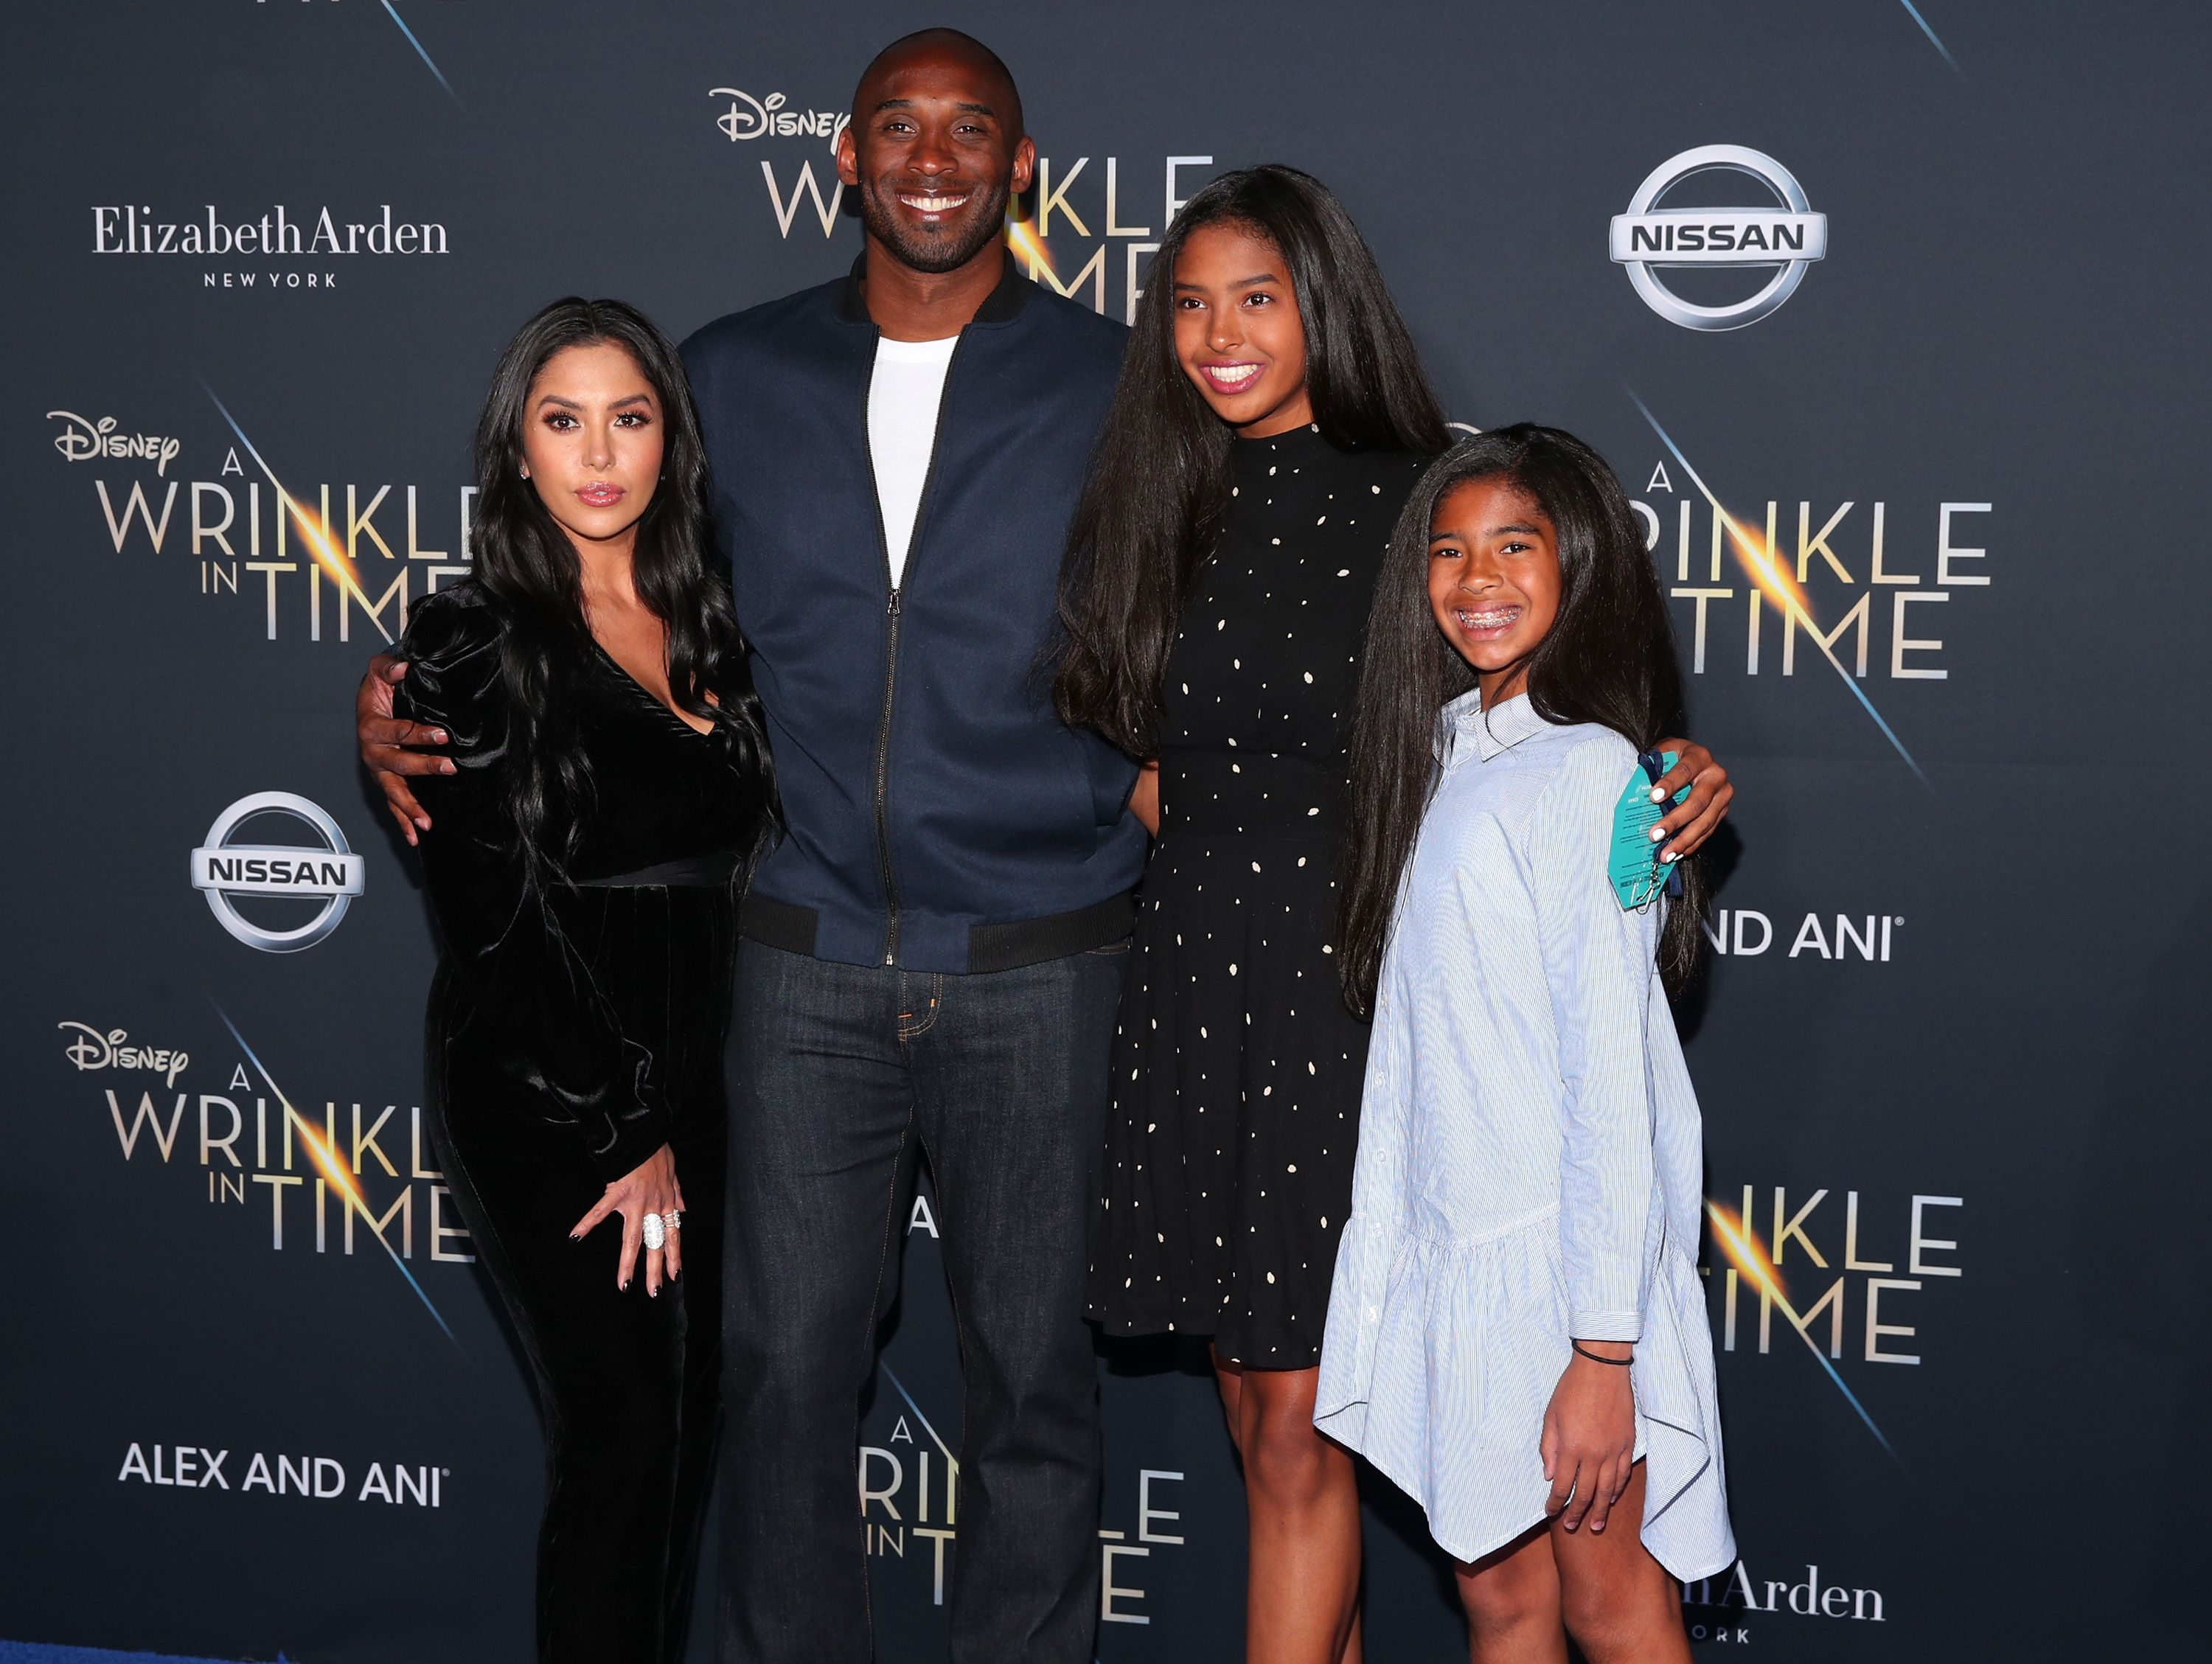 """Kobe Bryant and his family at the premiere of Disney's """"A Wrinkle In Time"""" at the El Capitan Theatre on February 26, 2018 